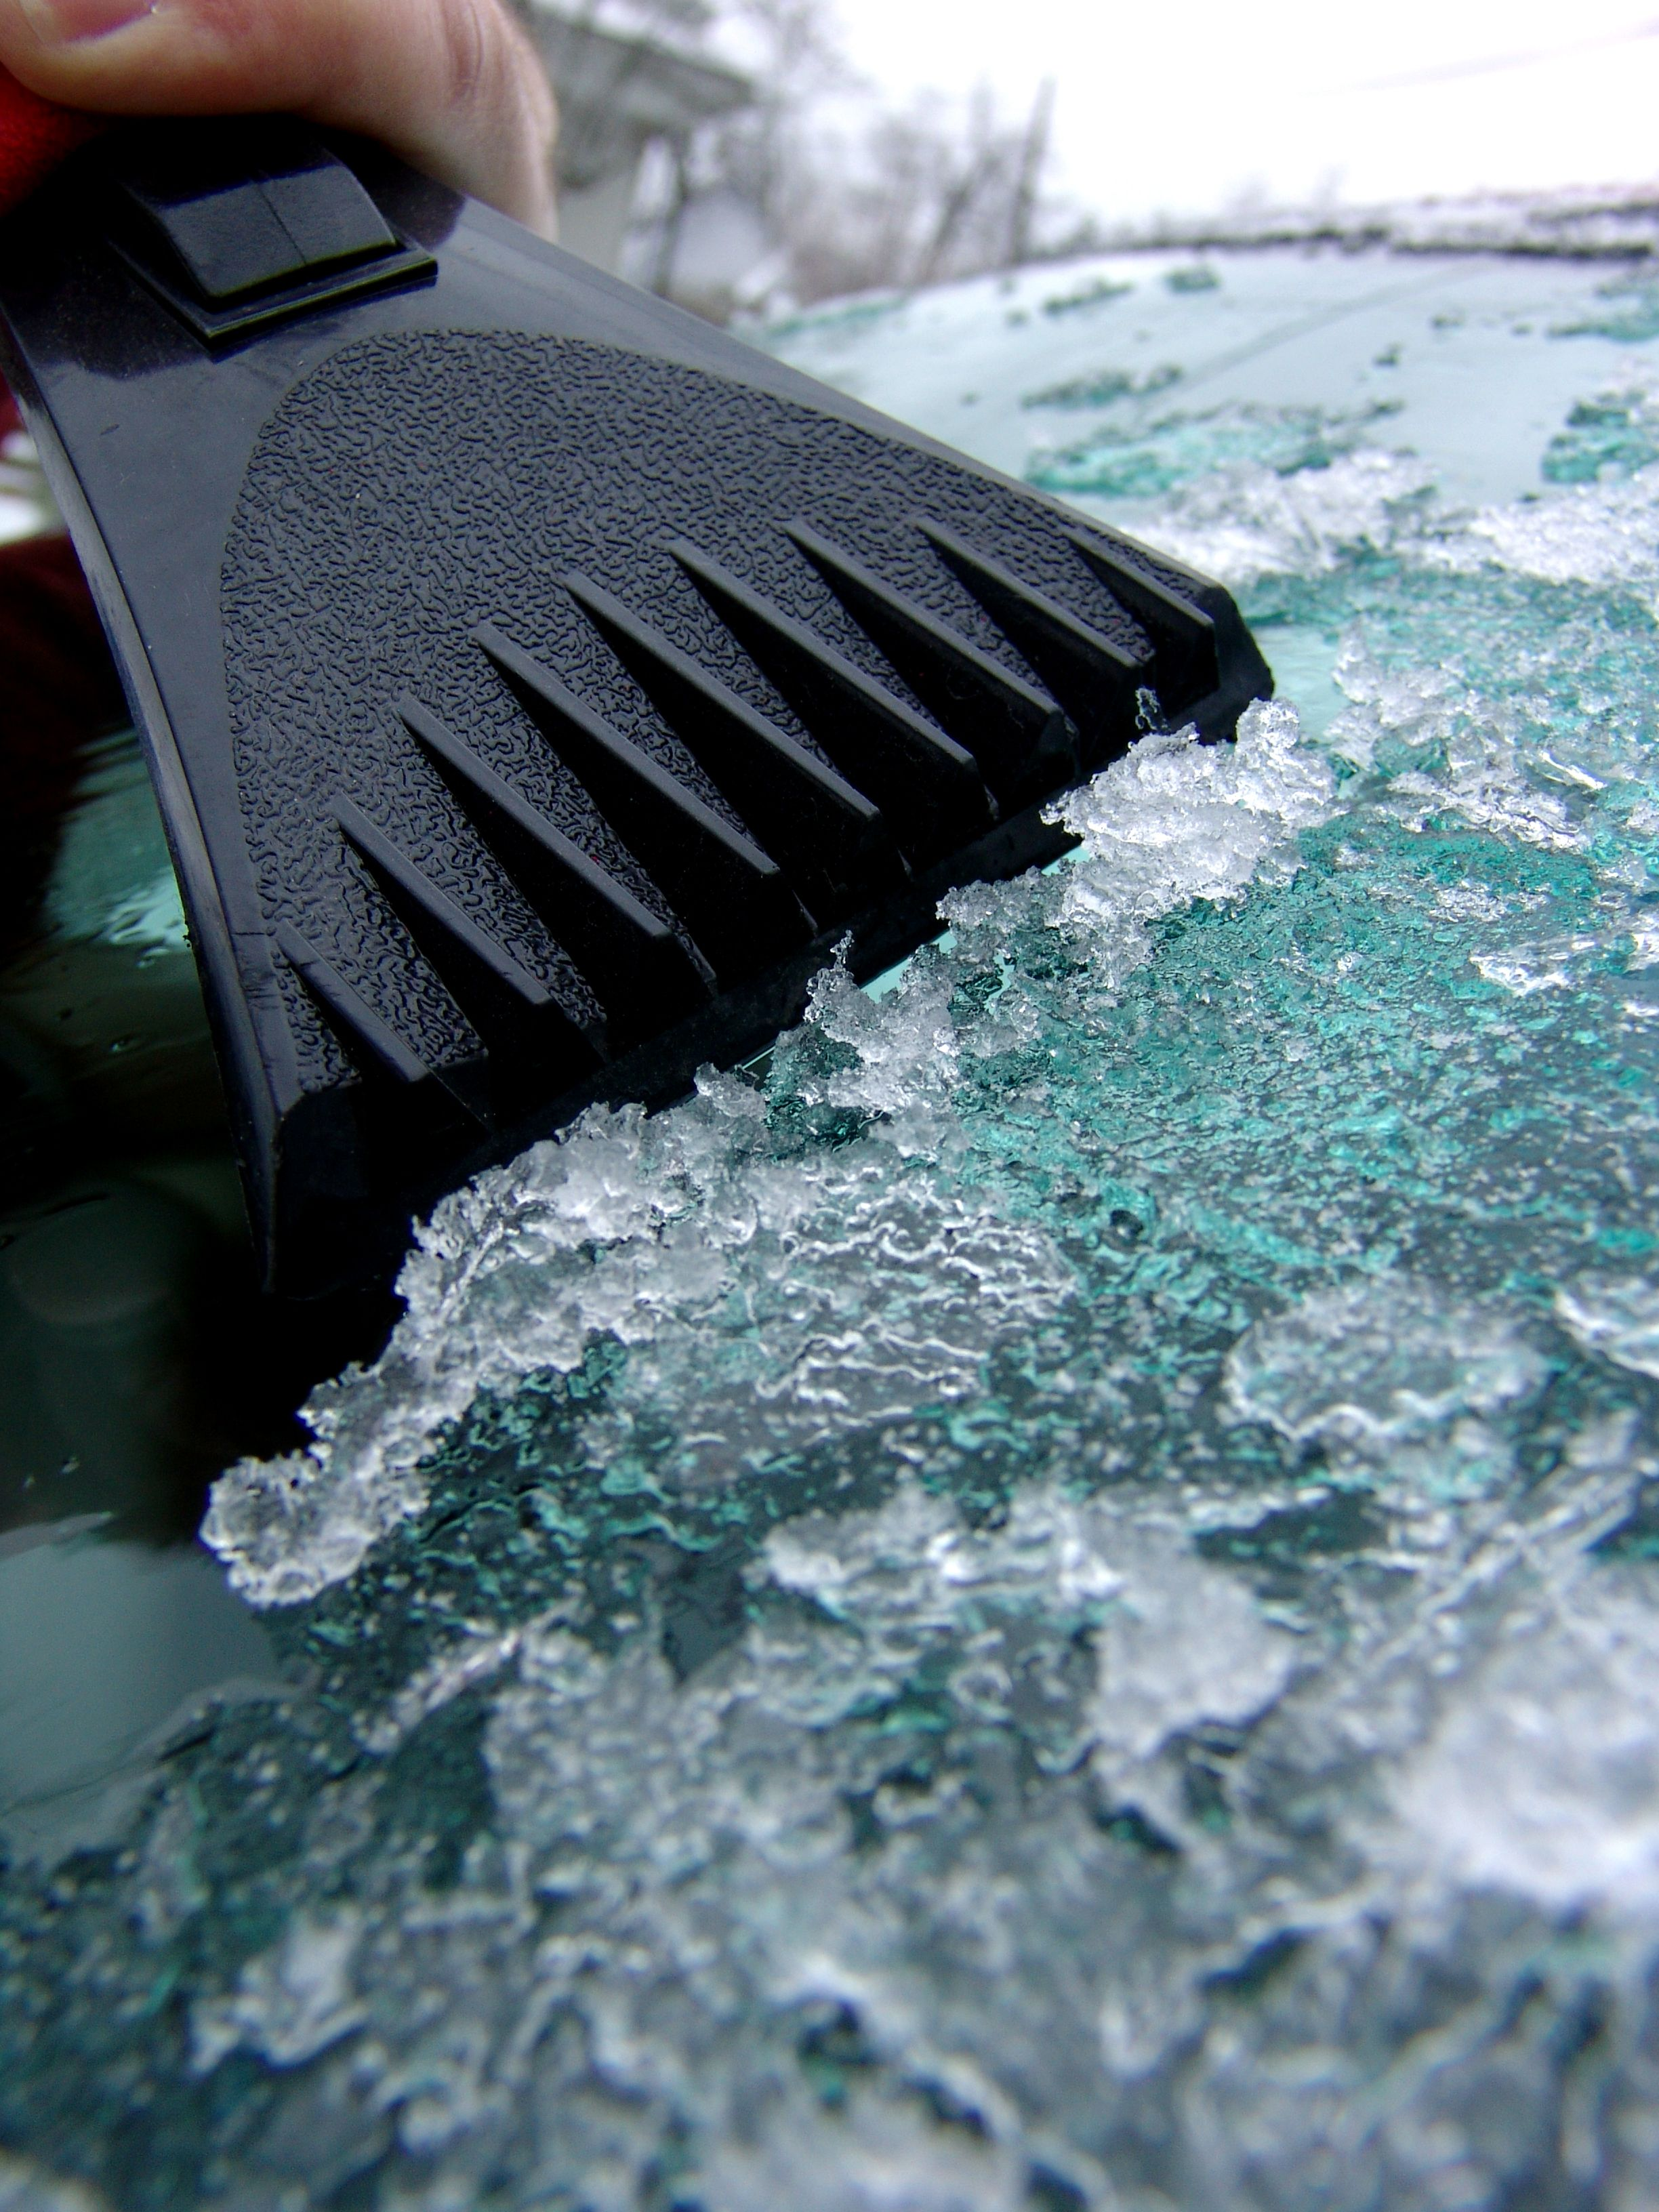 New Anti-Ice Coating Could Prevent Frozen Cars and Pipes